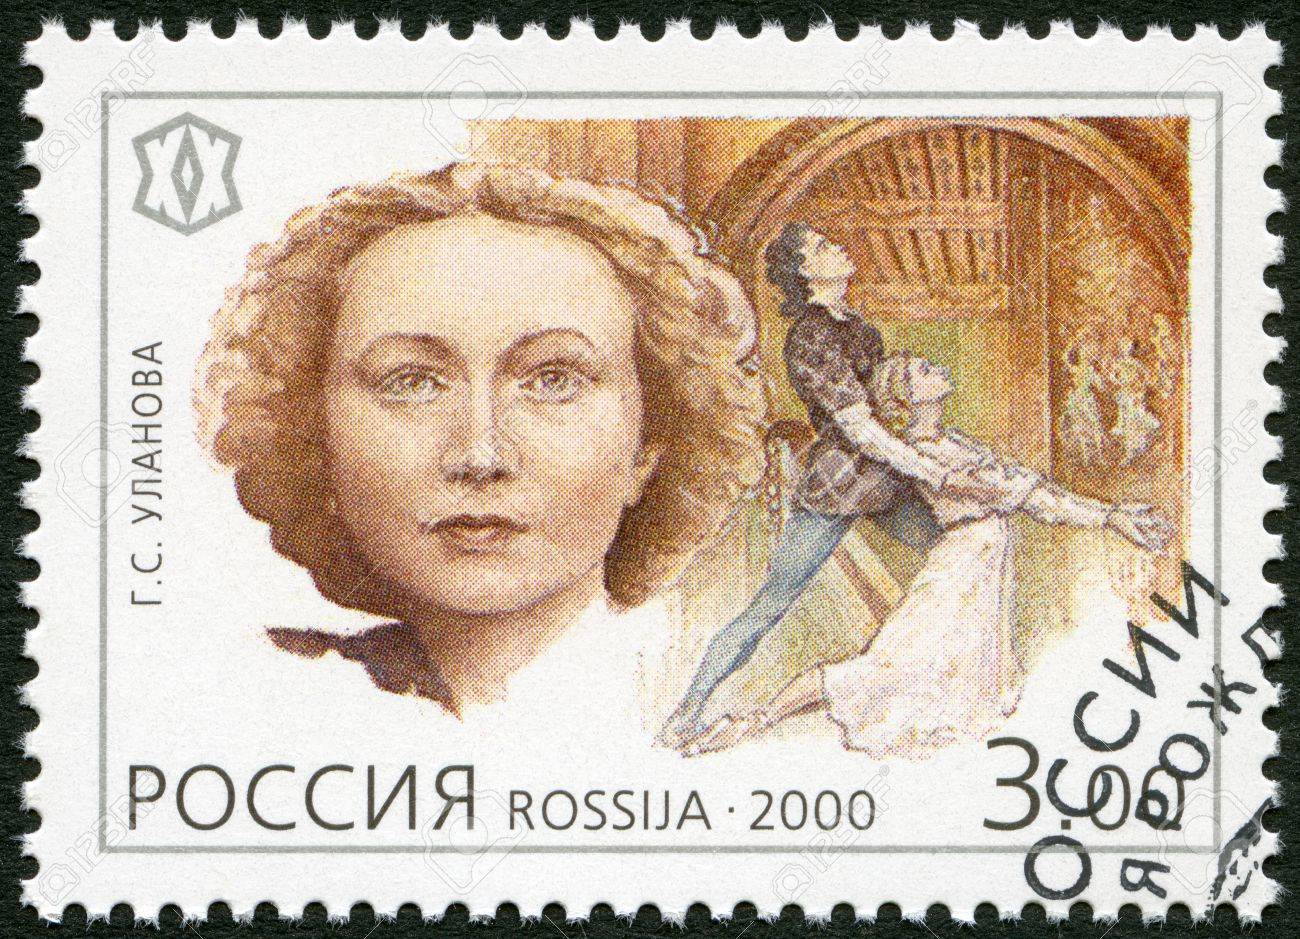 RUSSIA - CIRCA 2000: A stamp printed in Russia shows Galina S. Ulanova (1910-1998), ballet dancer, series National Cultural Milestones in the 20th Century, circa 2000 Stock Photo - 17523158